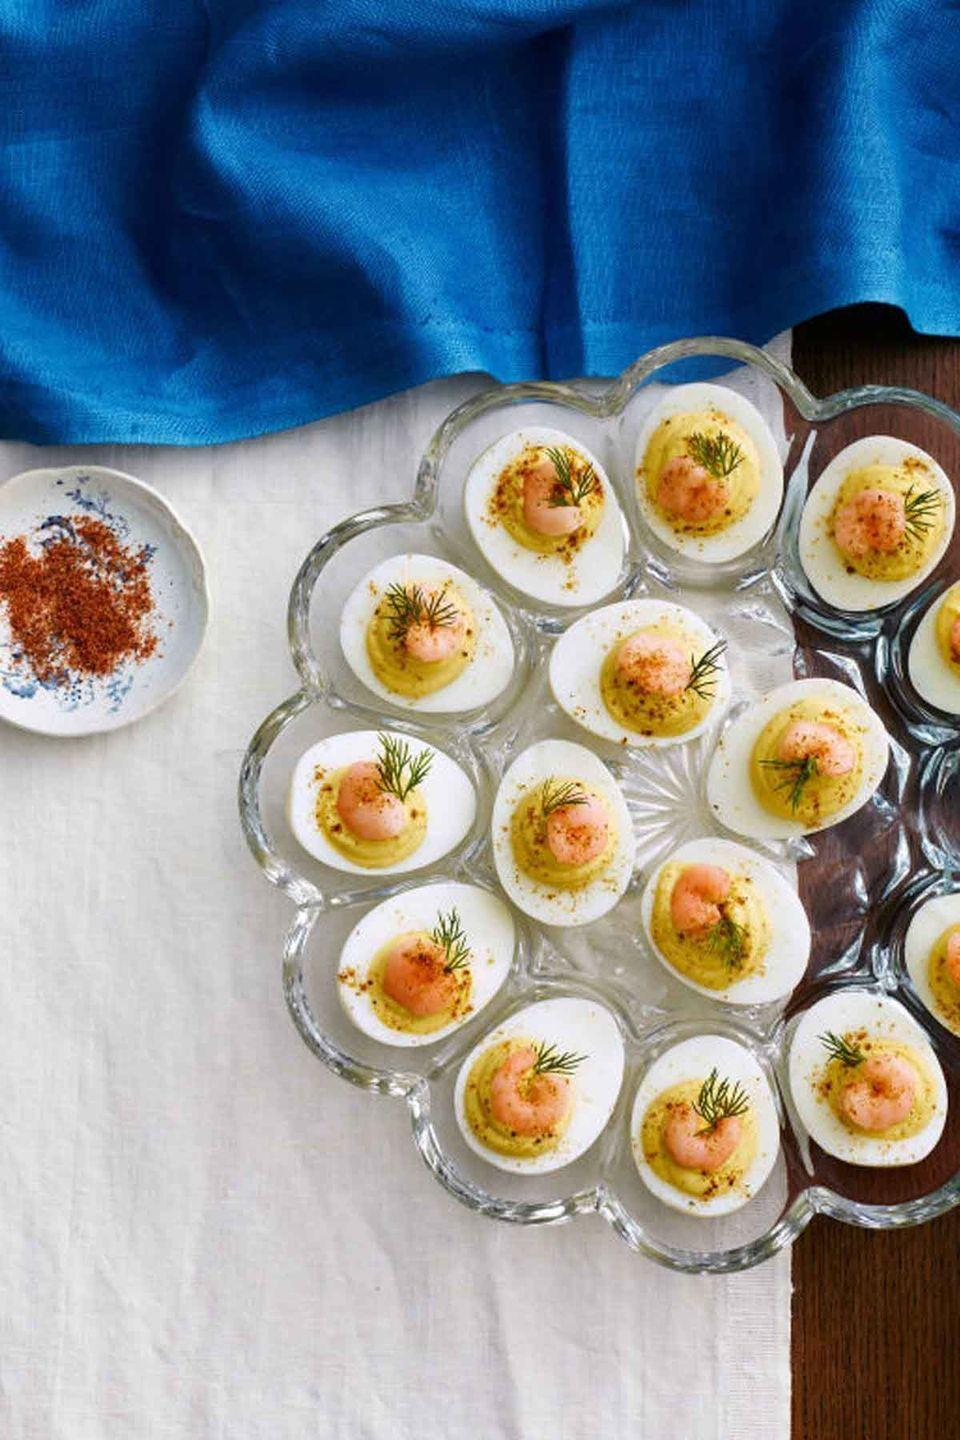 """<p>A taste of summer any time of year, these creamy deviled eggs incorporate Old Bay seasoning and pickled shrimp for an impressive dish. </p><p><a href=""""https://www.womansday.com/food-recipes/food-drinks/recipes/a39885/deviled-eggs-old-bay-shrimp-recipe-clx0414/"""" rel=""""nofollow noopener"""" target=""""_blank"""" data-ylk=""""slk:Get the Deviled Eggs with Old Bay Shrimp recipe."""" class=""""link rapid-noclick-resp""""><strong><em>Get the Deviled Eggs with Old Bay Shrimp recipe.</em></strong></a> </p>"""